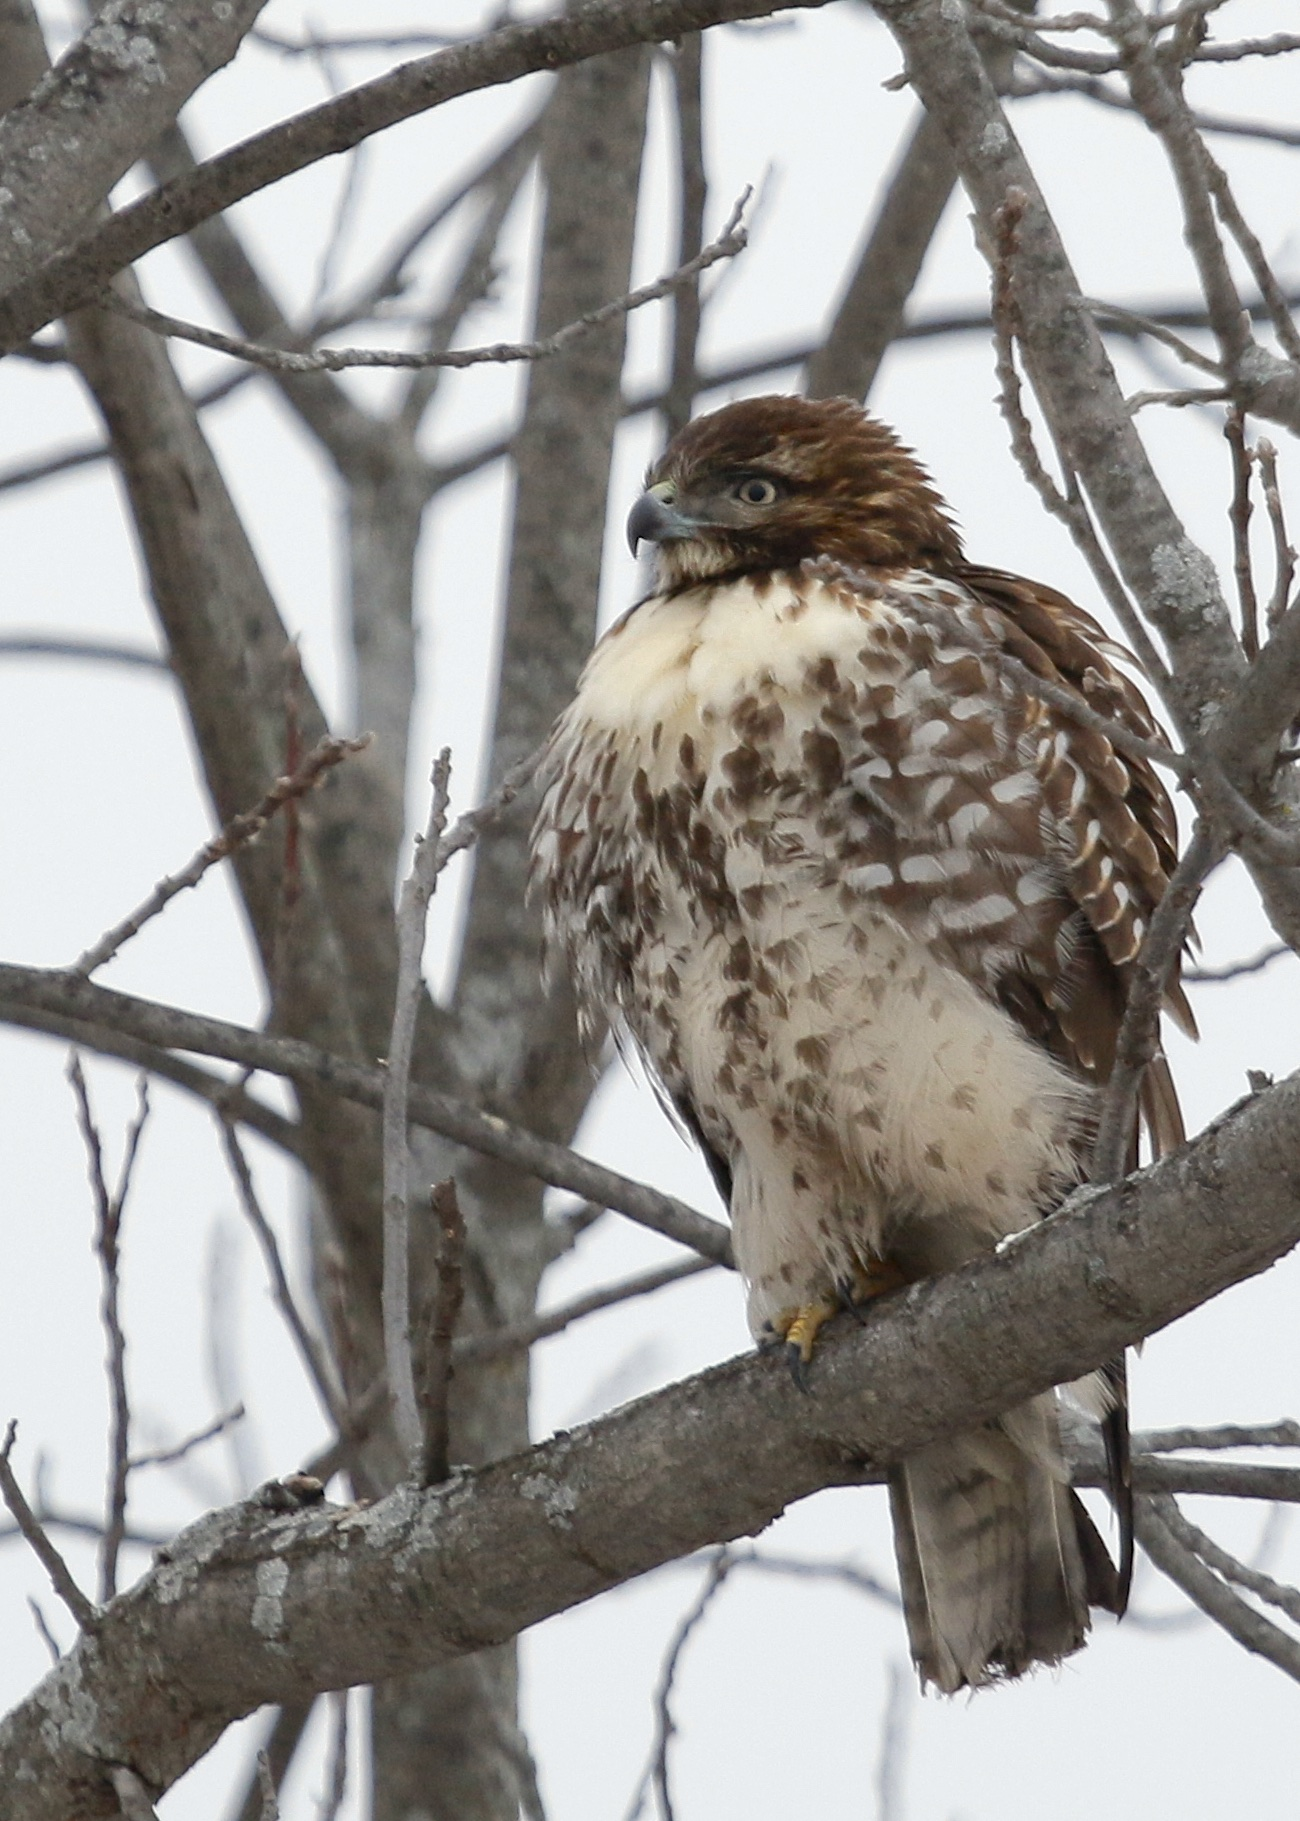 Red-tailed Hawk in New Hampton, NY 1/11/15.